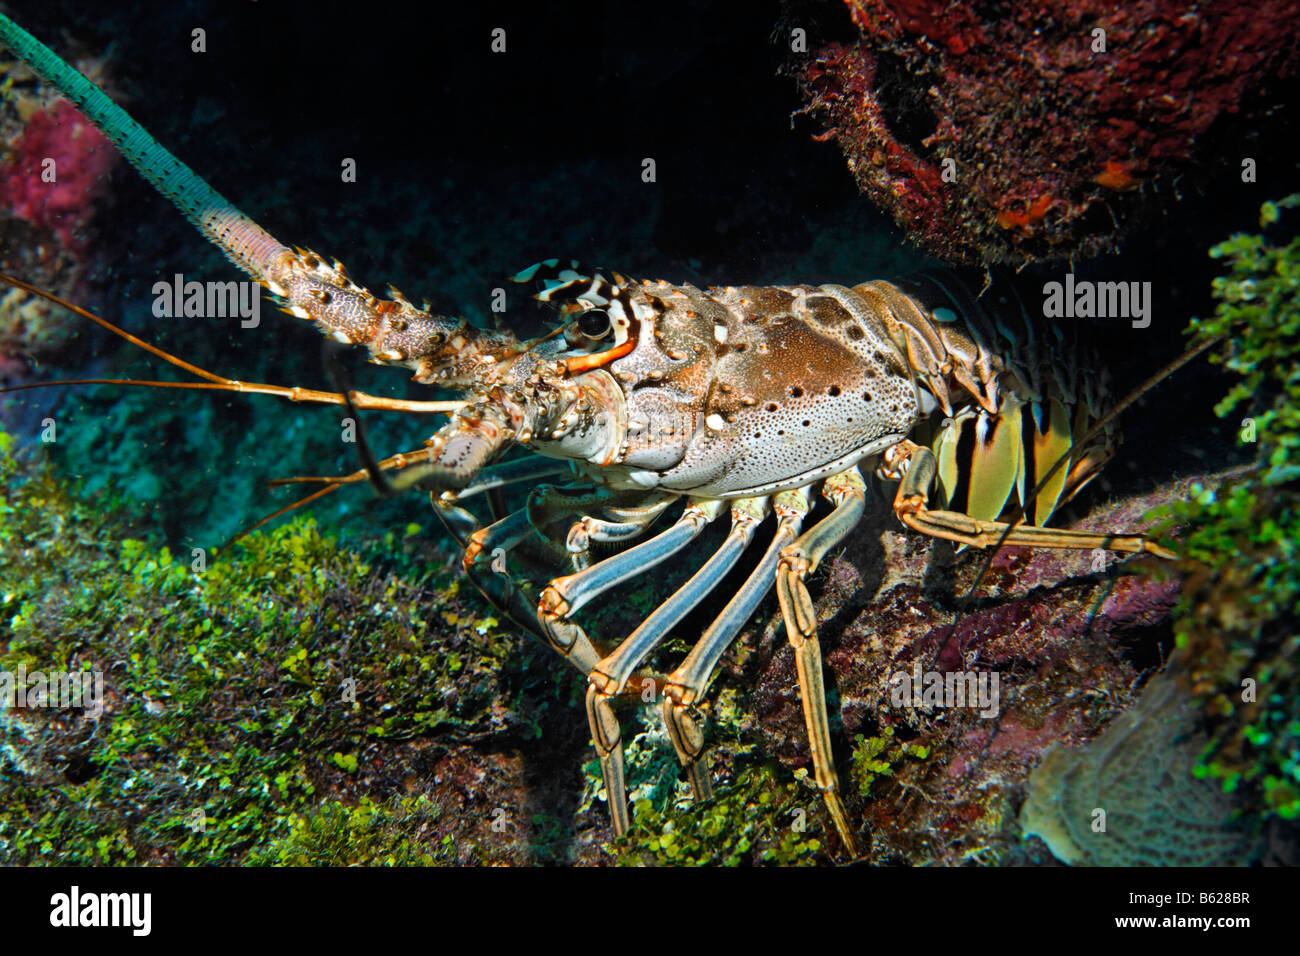 Caribbean Spiny Lobster (Panulirus argus) in a crevice, Barrier Reef, San Pedro, Ambergris Cay Island, Belize, Central - Stock Image